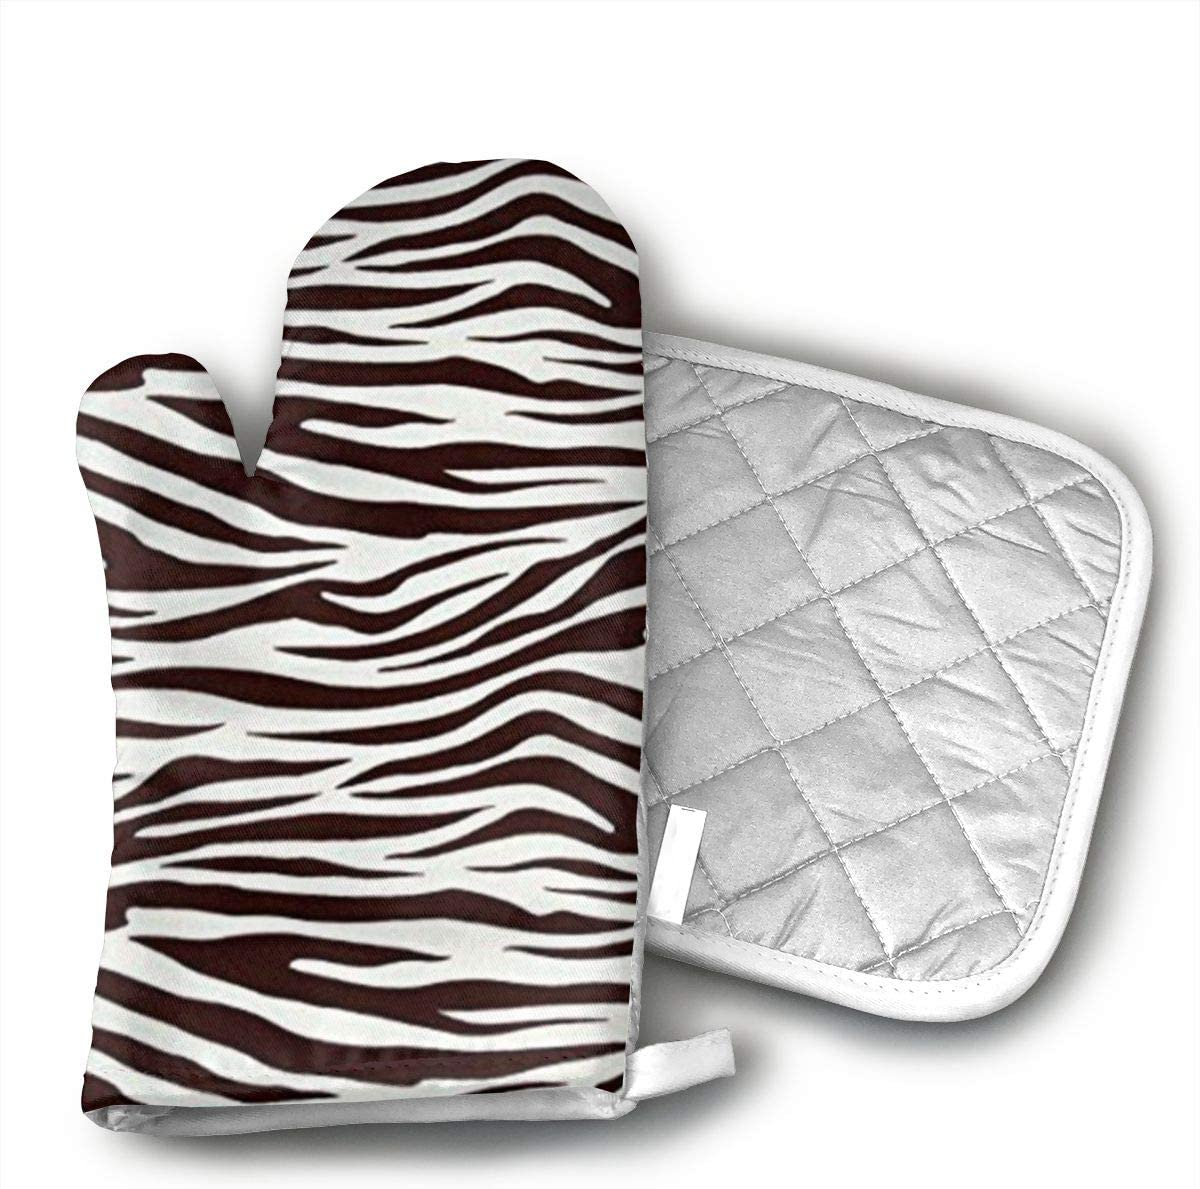 BOAOHG Metro Living Zebra Chocolate Oven Gloves and Pot Rack Or Oven Gloves On 100% Cotton High Heat Resistance